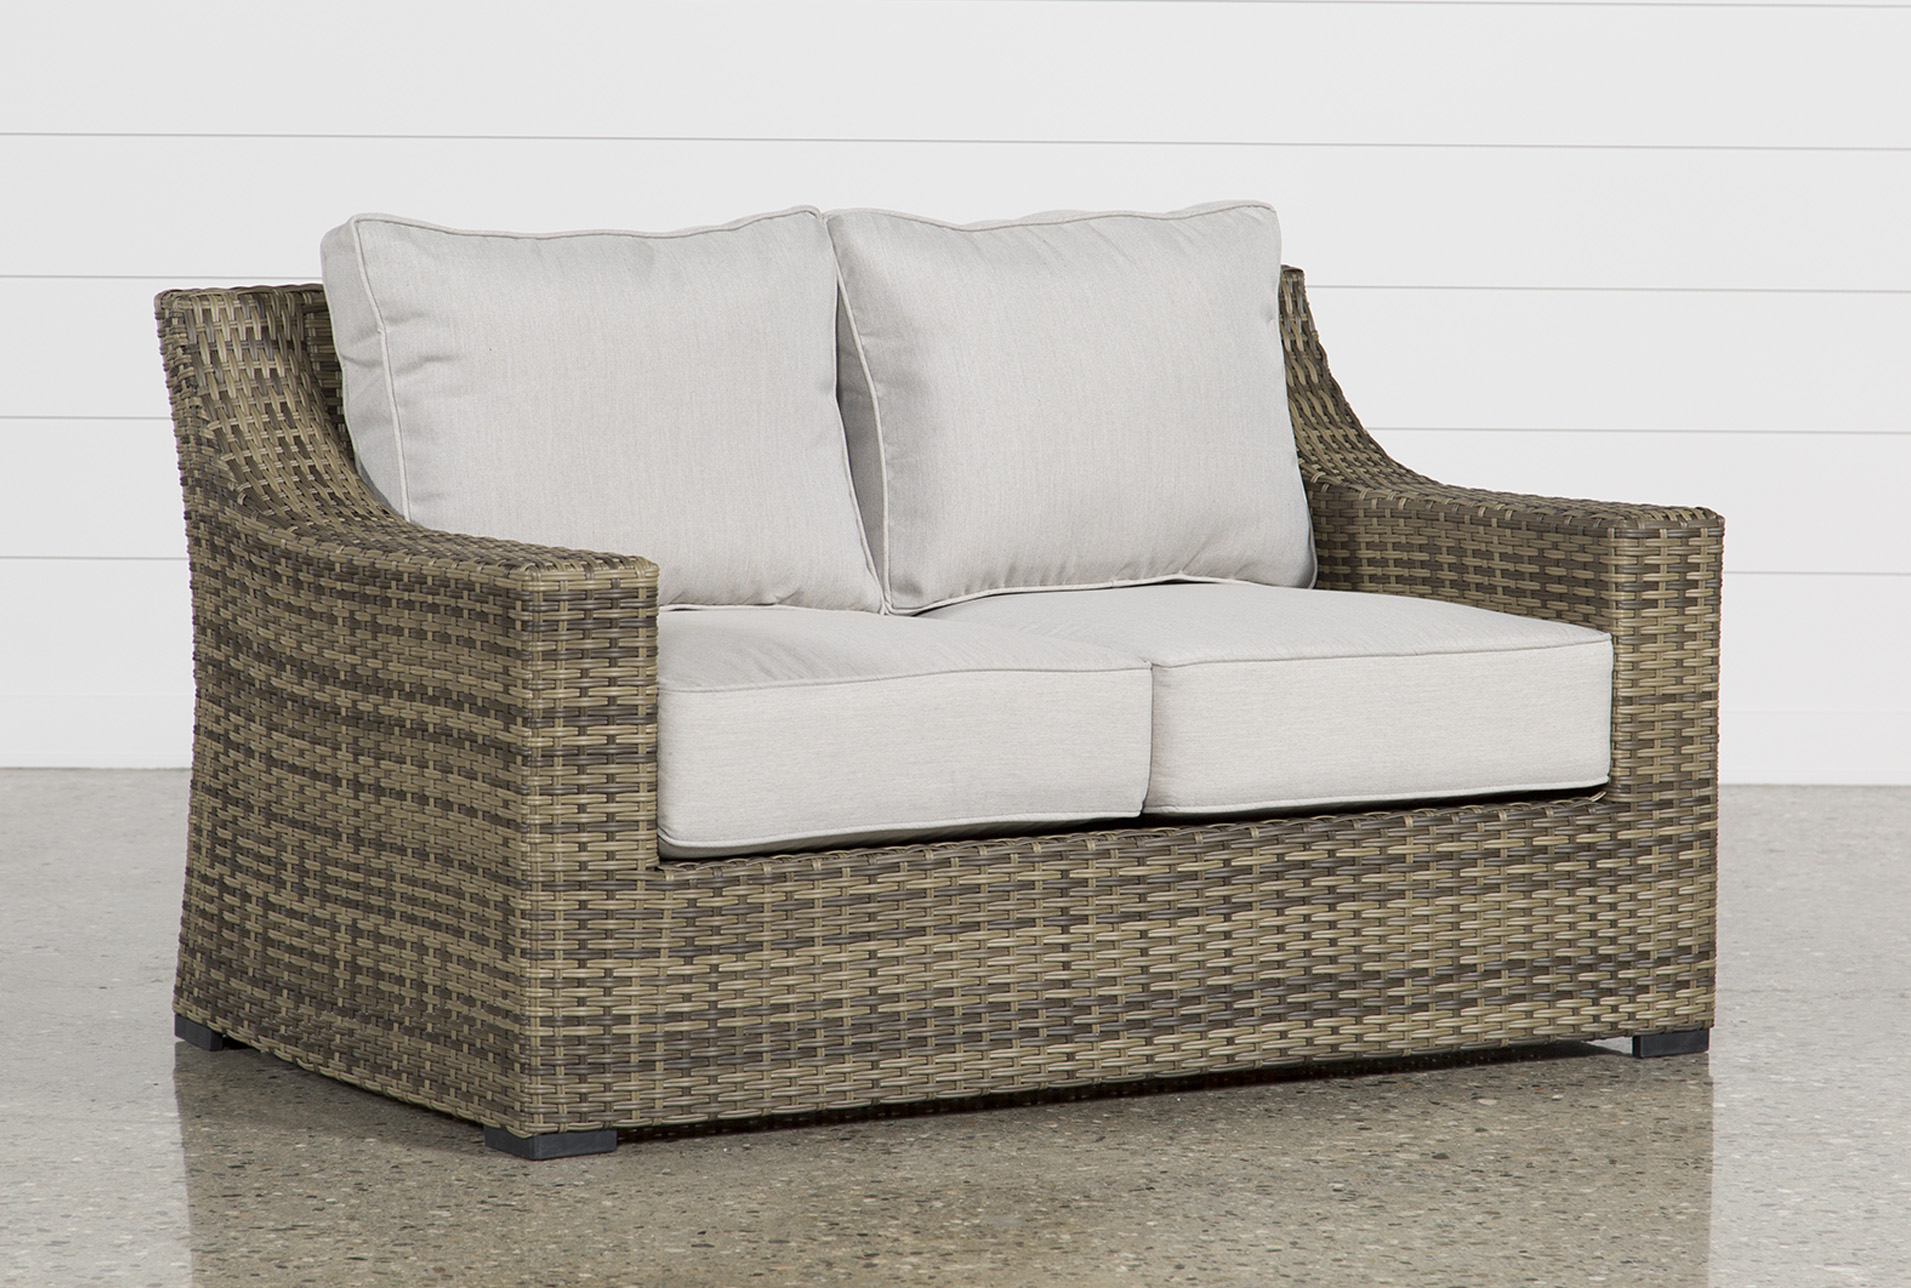 Superbe Outdoor Aventura Loveseat (Qty: 1) Has Been Successfully Added To Your Cart.